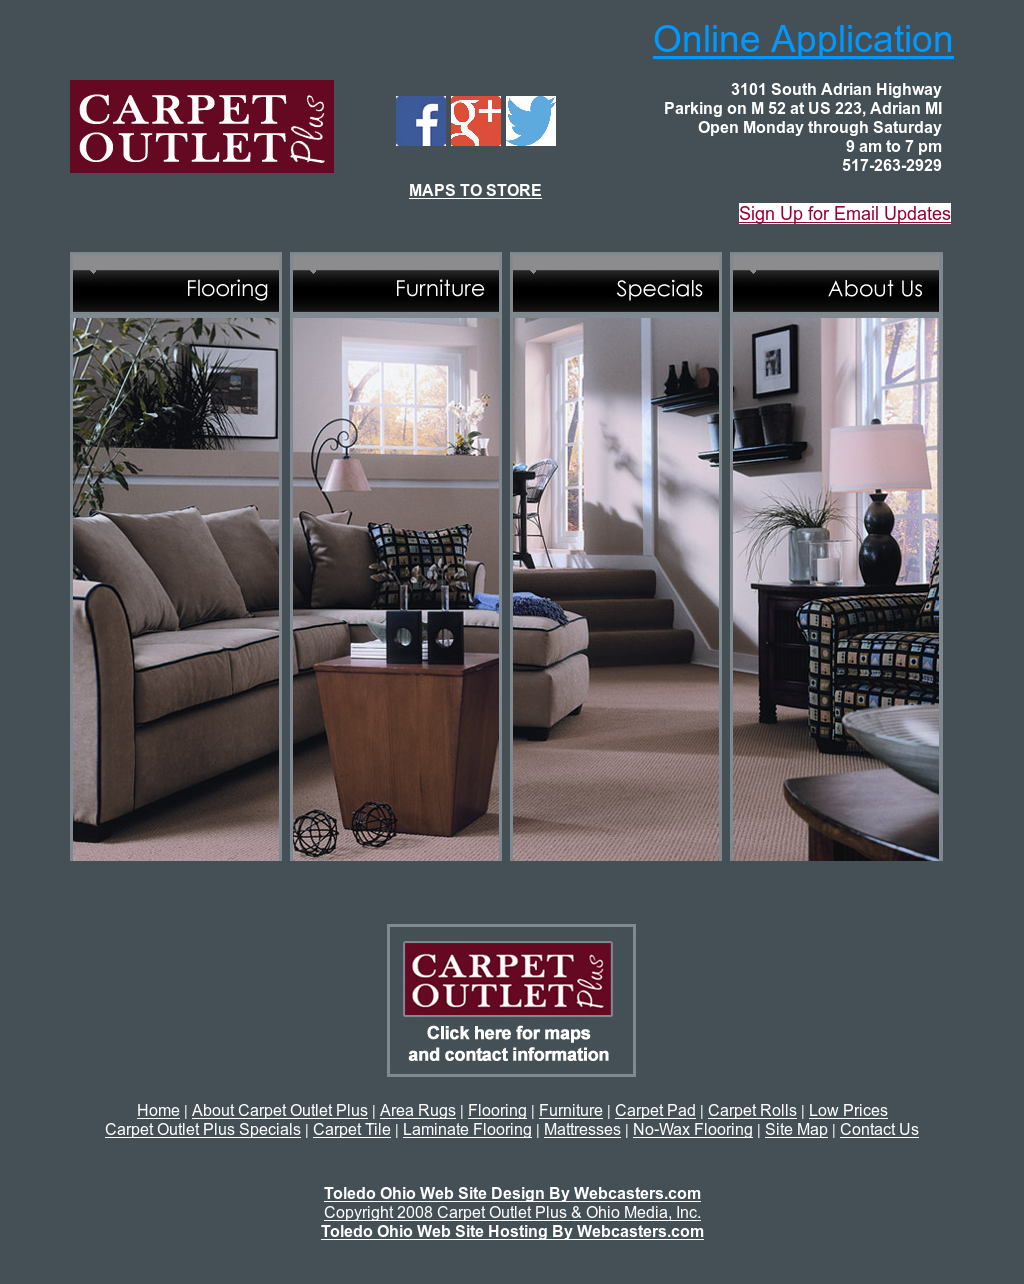 Carpet Outlet Plus Ohio Media Competitors Revenue And Employees Owler Company Profile